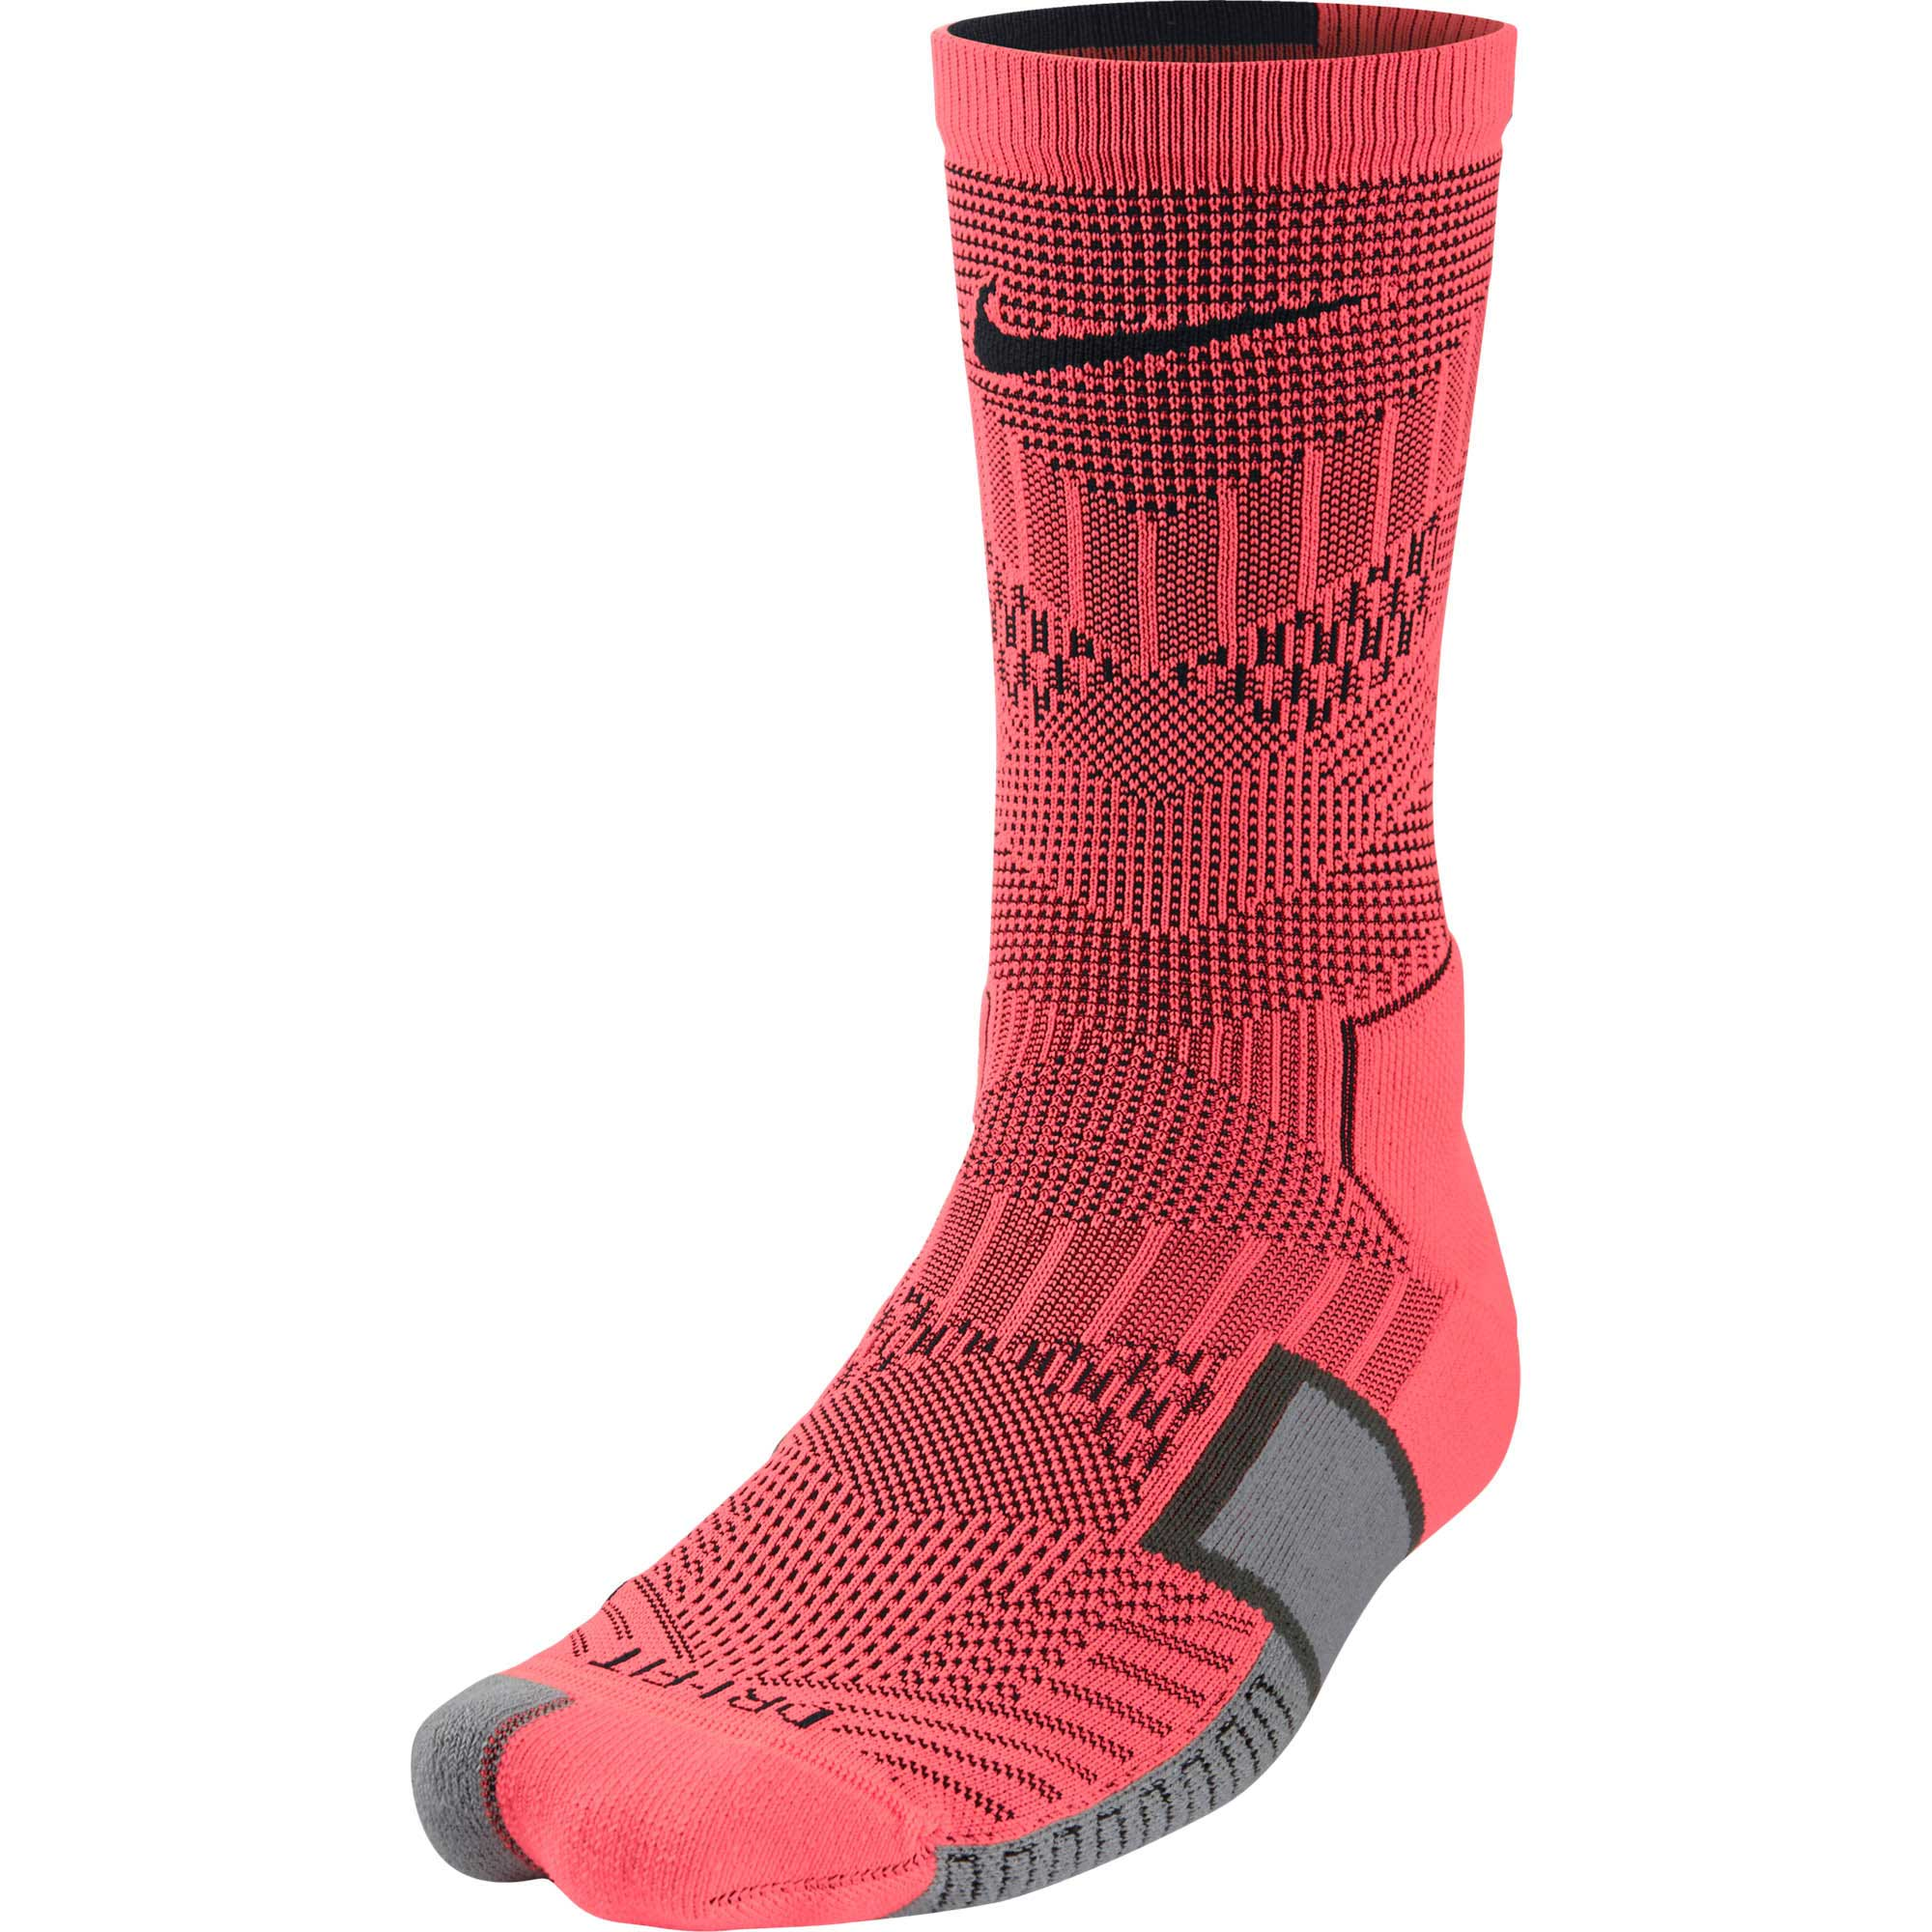 Nike Elite Match Fit Soccer Crew Sock - Red - SoccerPro